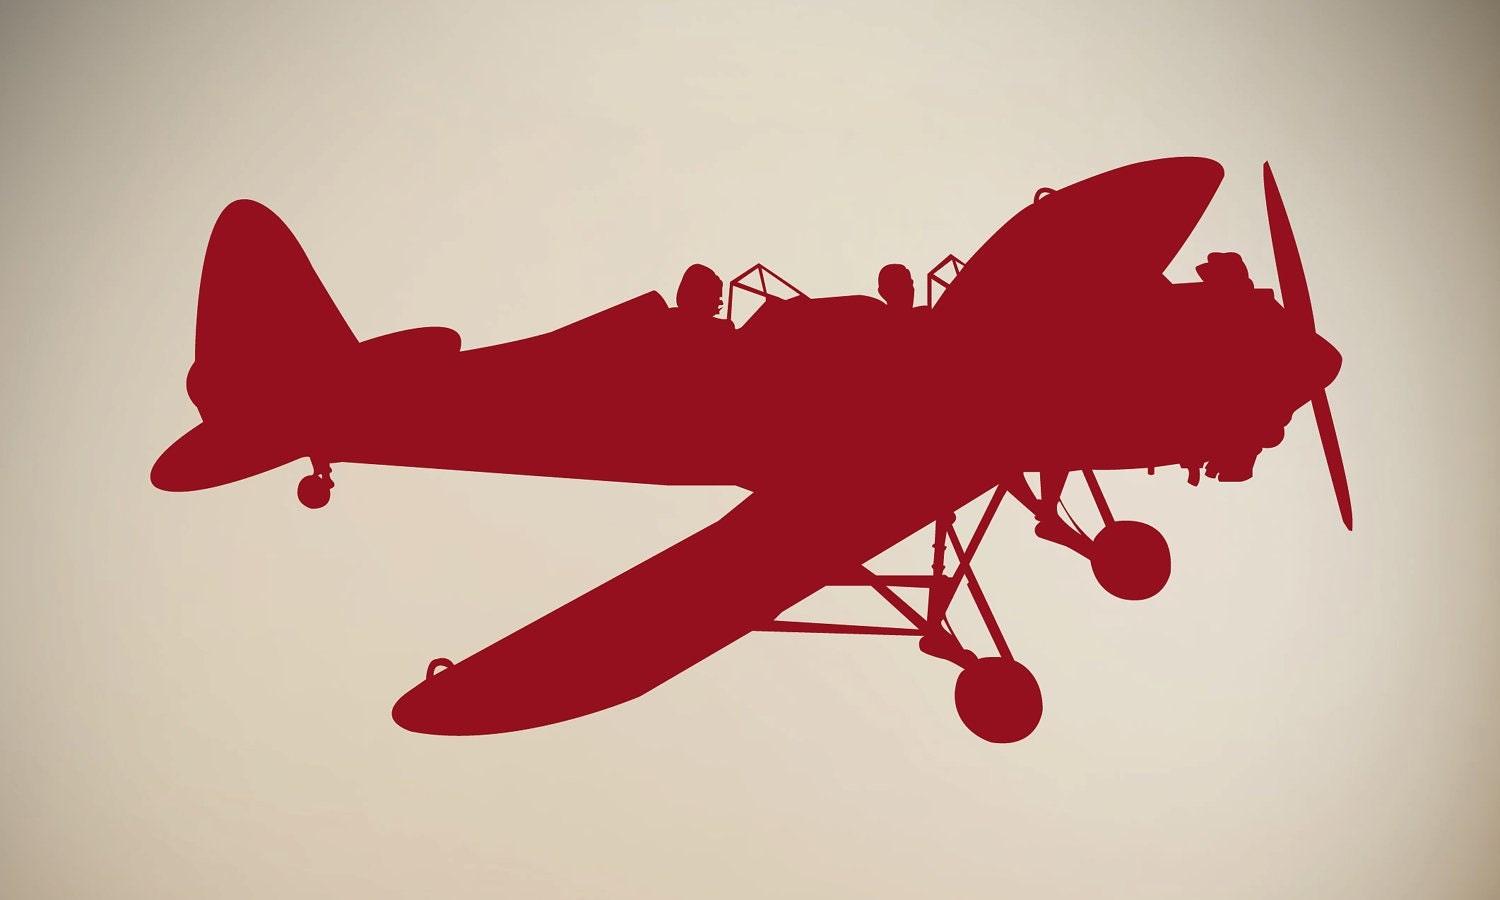 Wall Vinyl Decal Vintage Airplane By Aubreyheath On Etsy